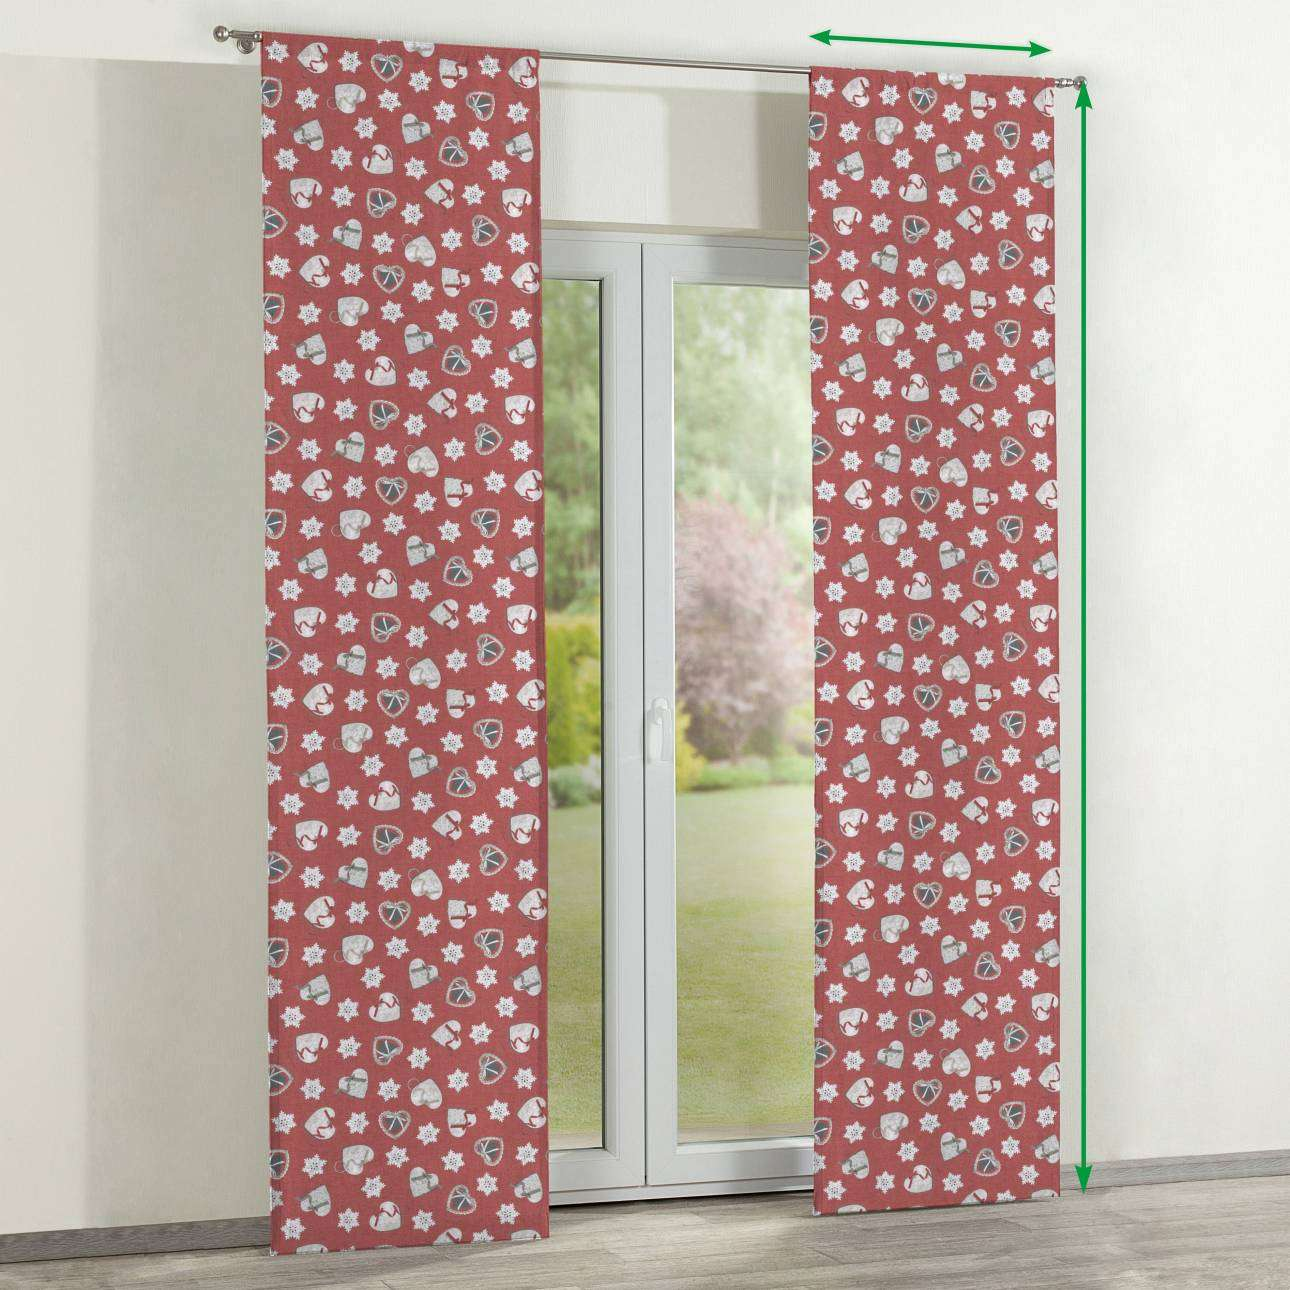 Slot panel curtains – Set of 2 in collection Christmas , fabric: 629-29